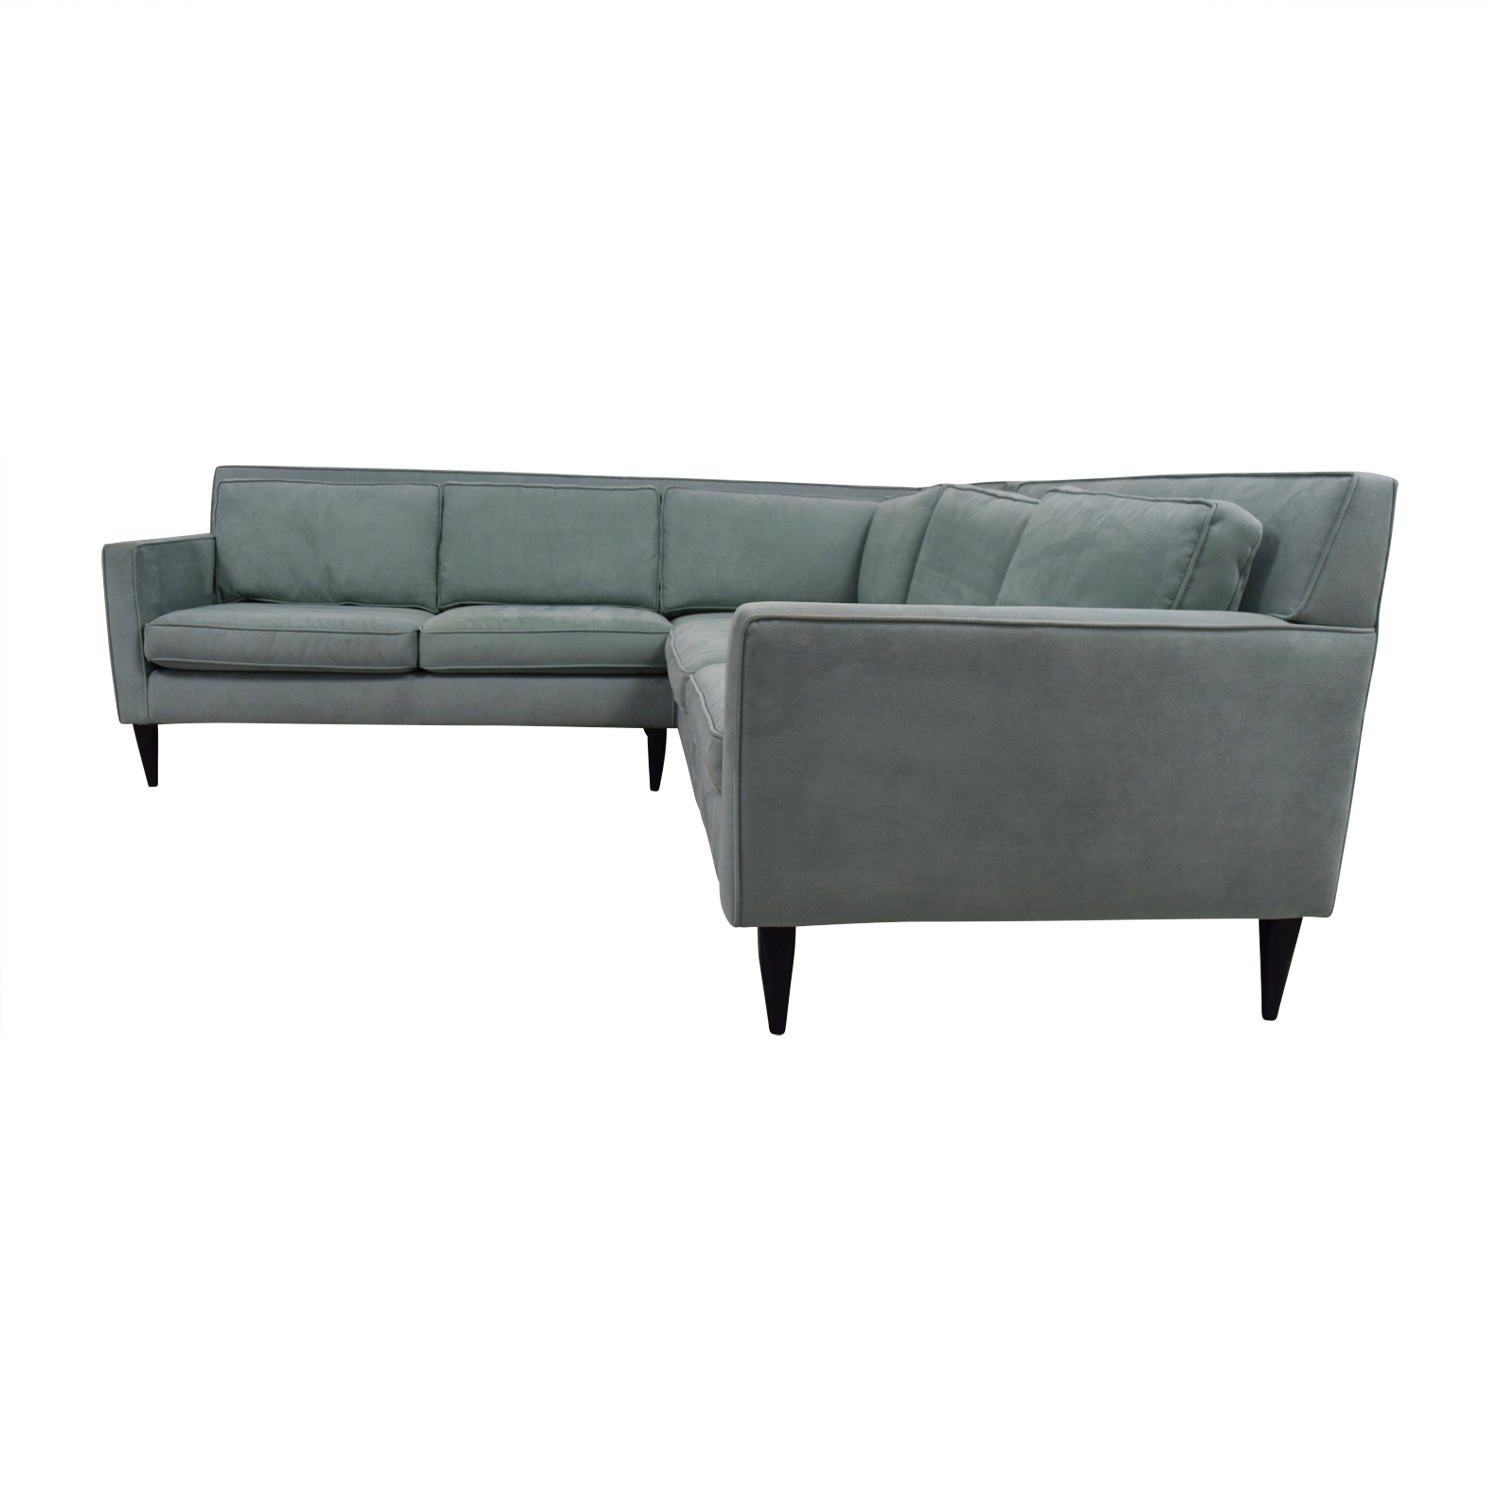 Crate & Barrel Rochelle Teal Sectional / Sectionals